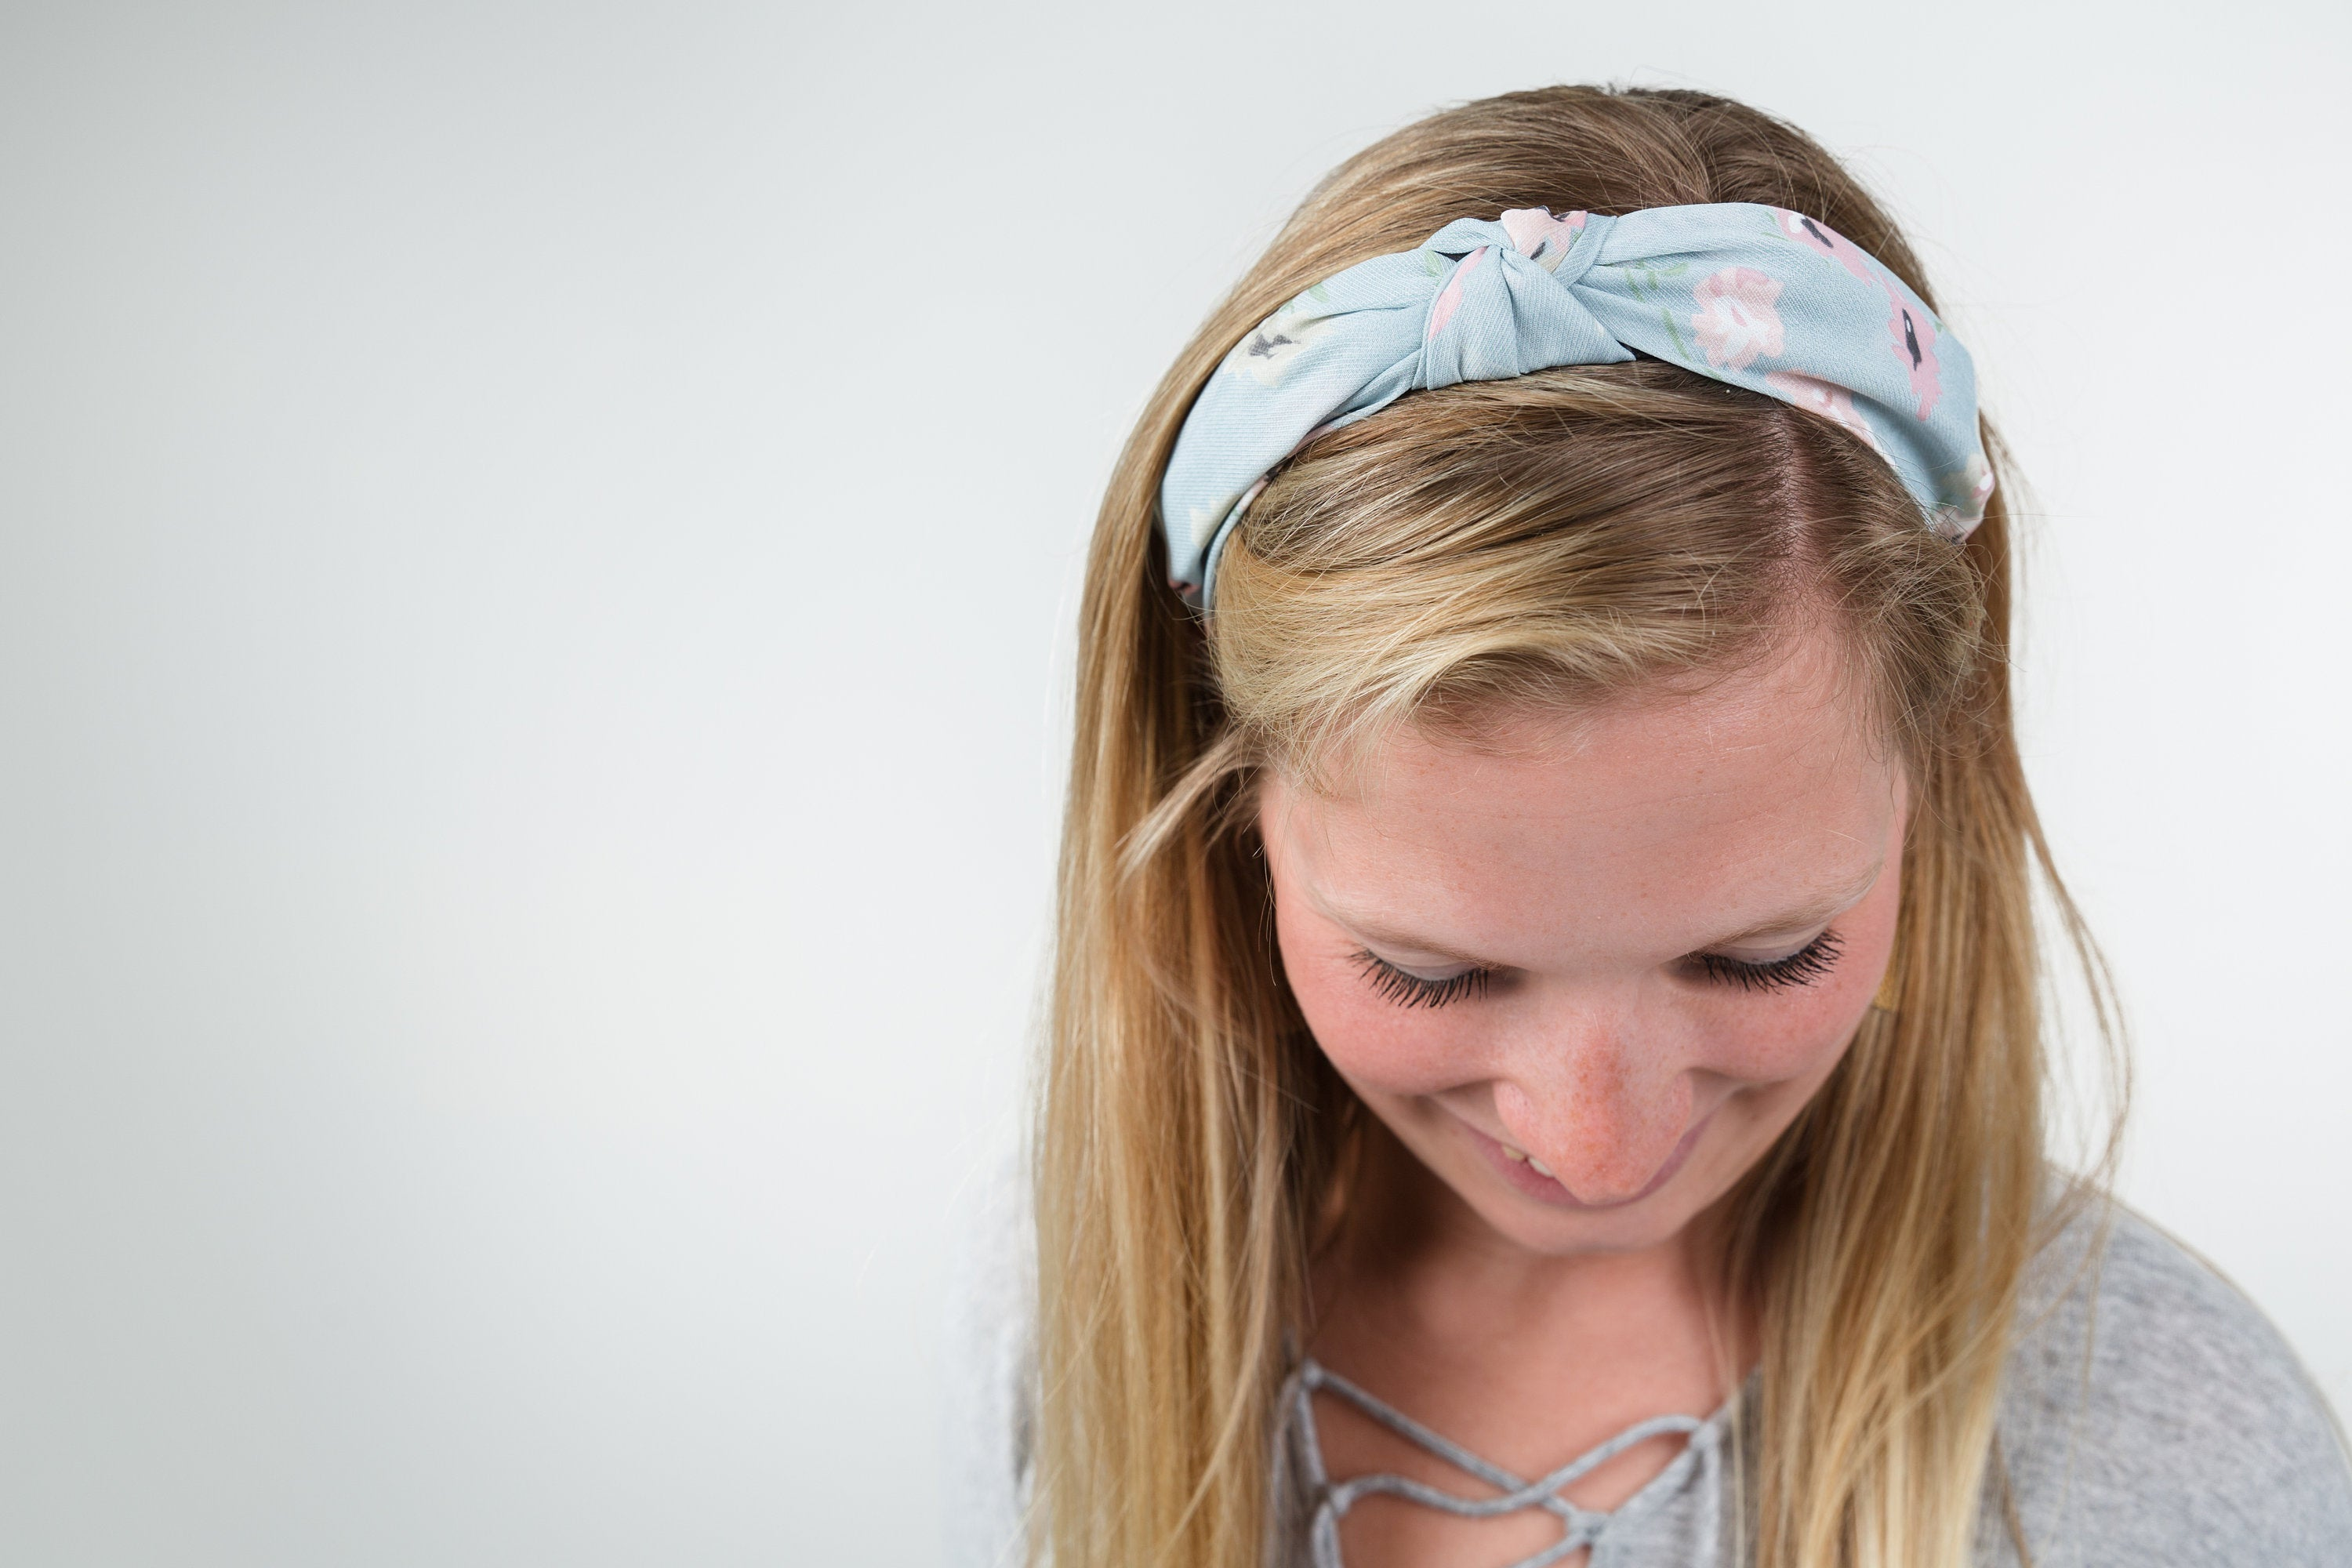 Leopard print knotted hard headband for girl, womens hard headband for women, beige knotted headband for women's headband, tan headband